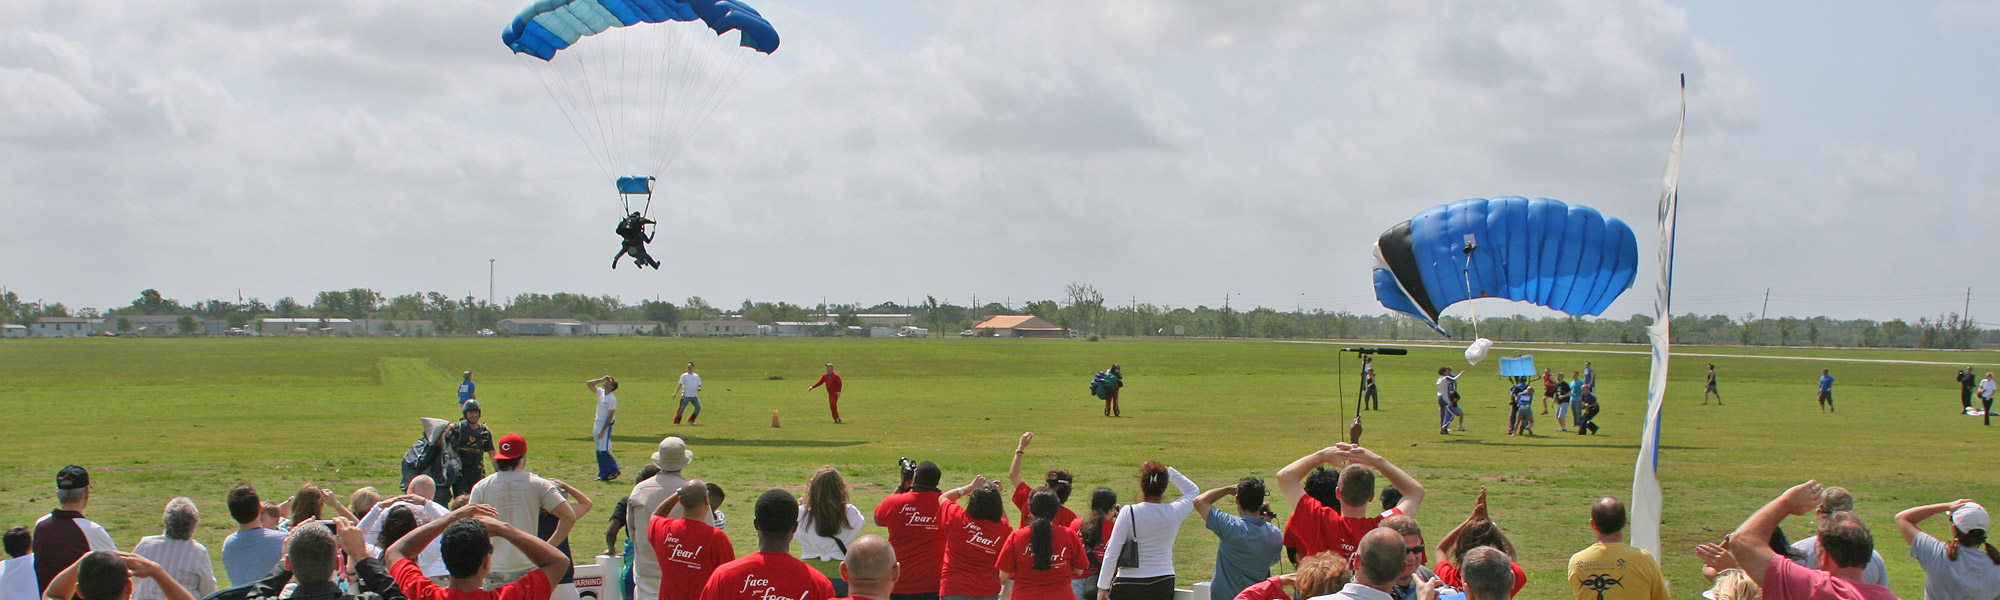 Skydive Spaceland Group Events